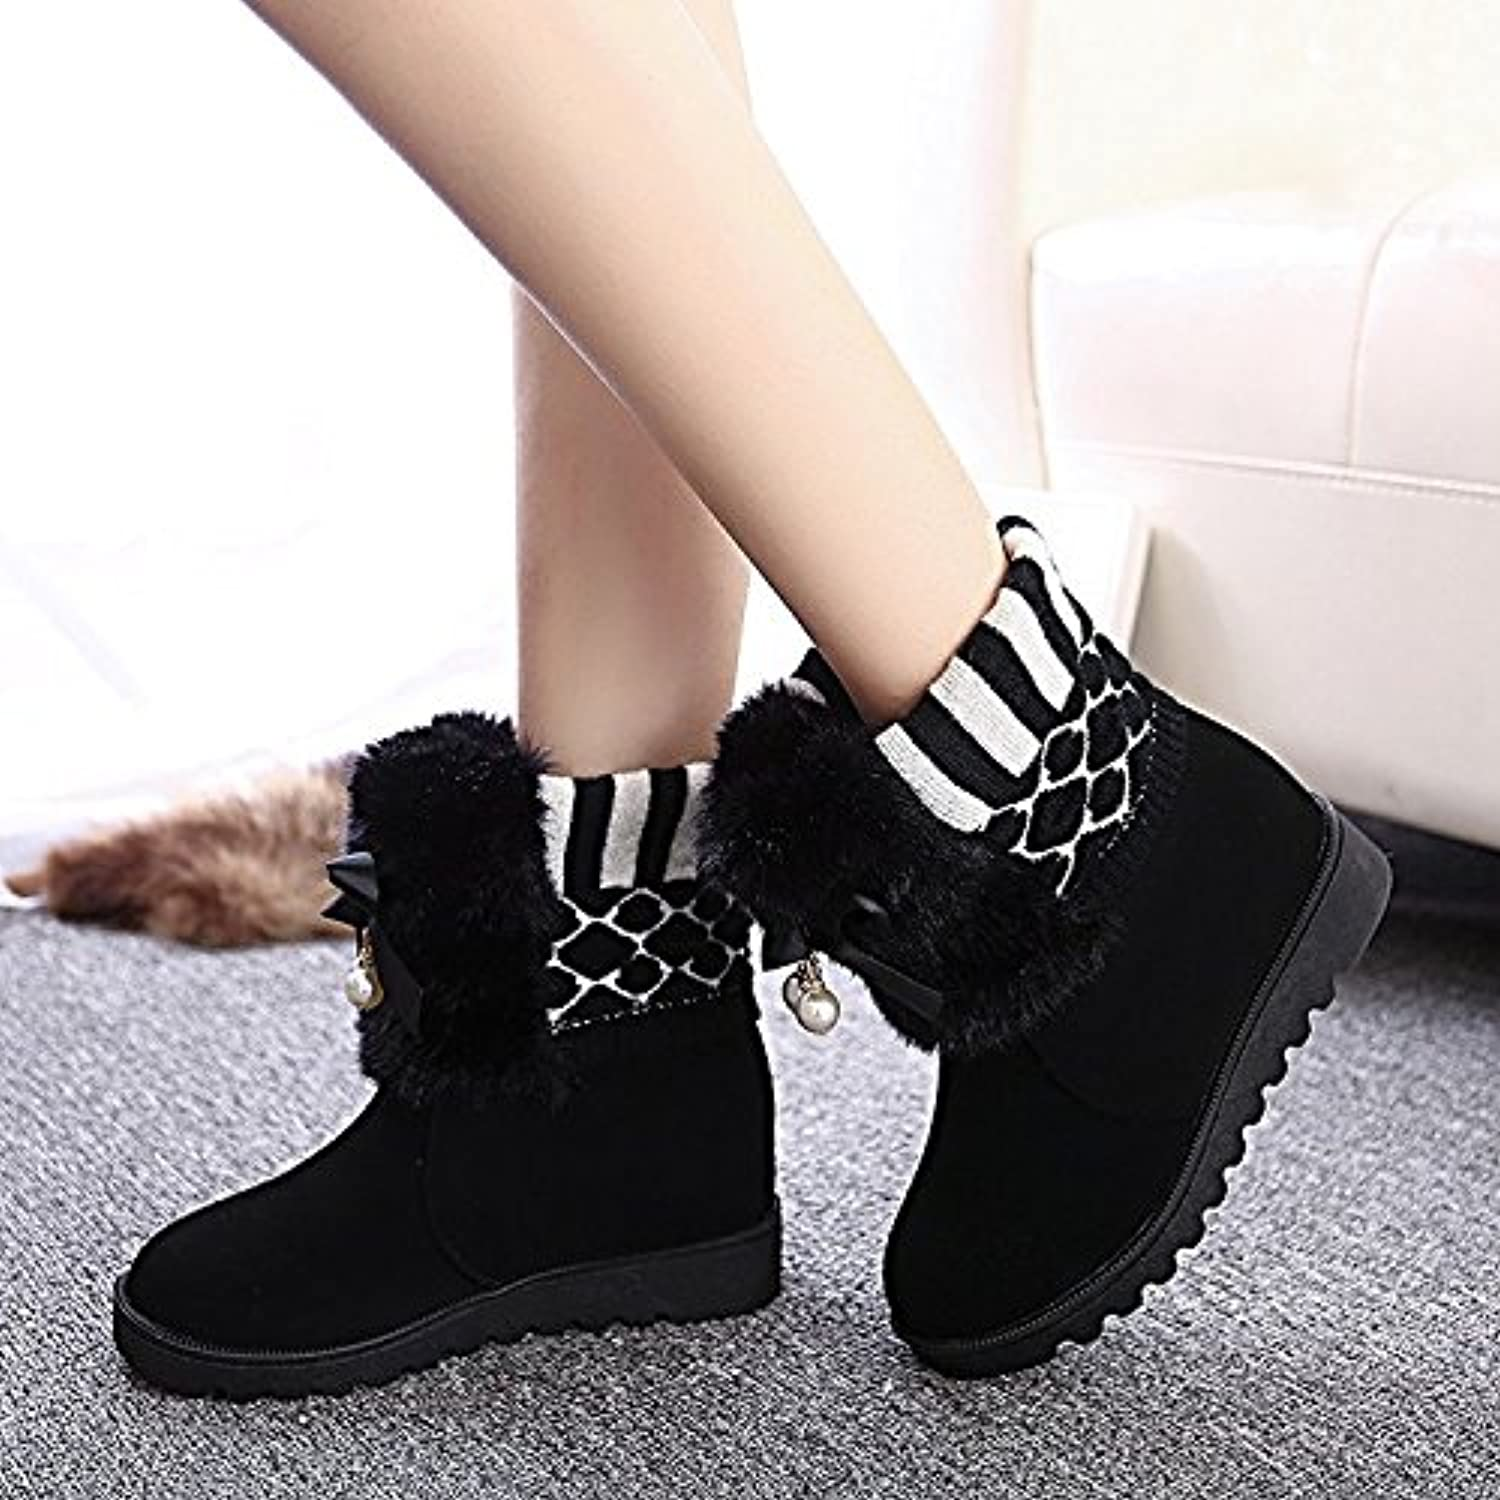 WYMBS Women's shoes Flat with Tie Short Boots Bowknot Cotton Boots